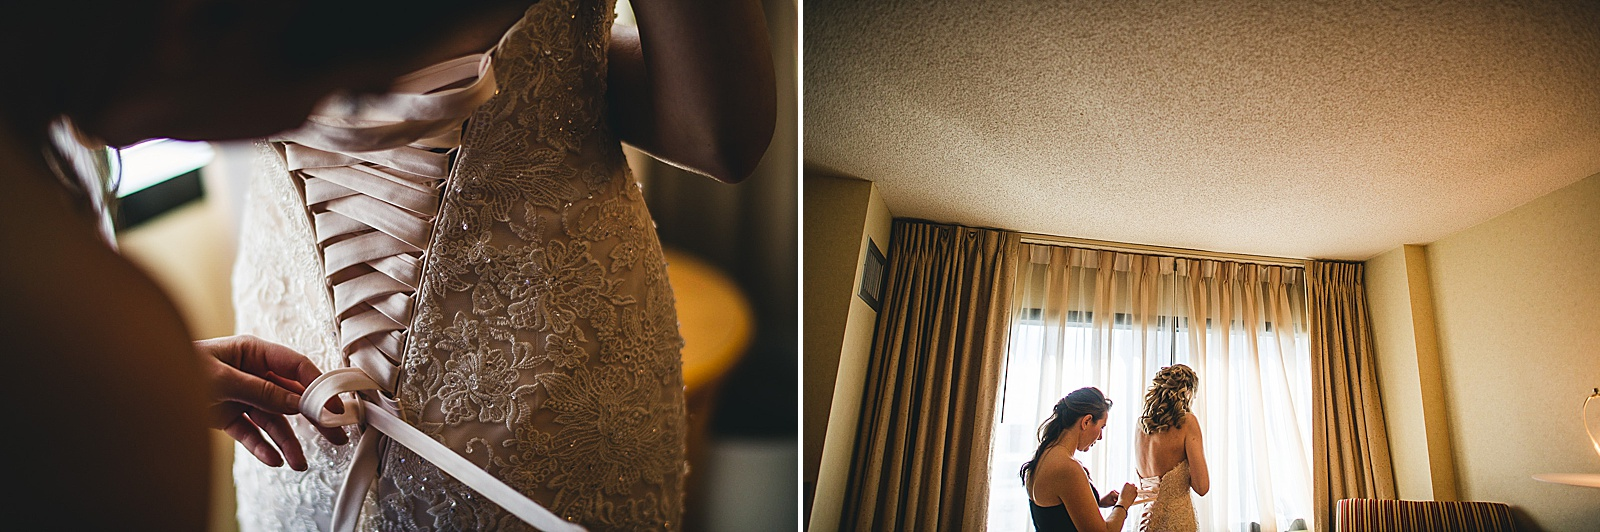 06 bride getting ready at drury lane - Oakbrook Wedding Photos at Drury Lane // Marina + Joe